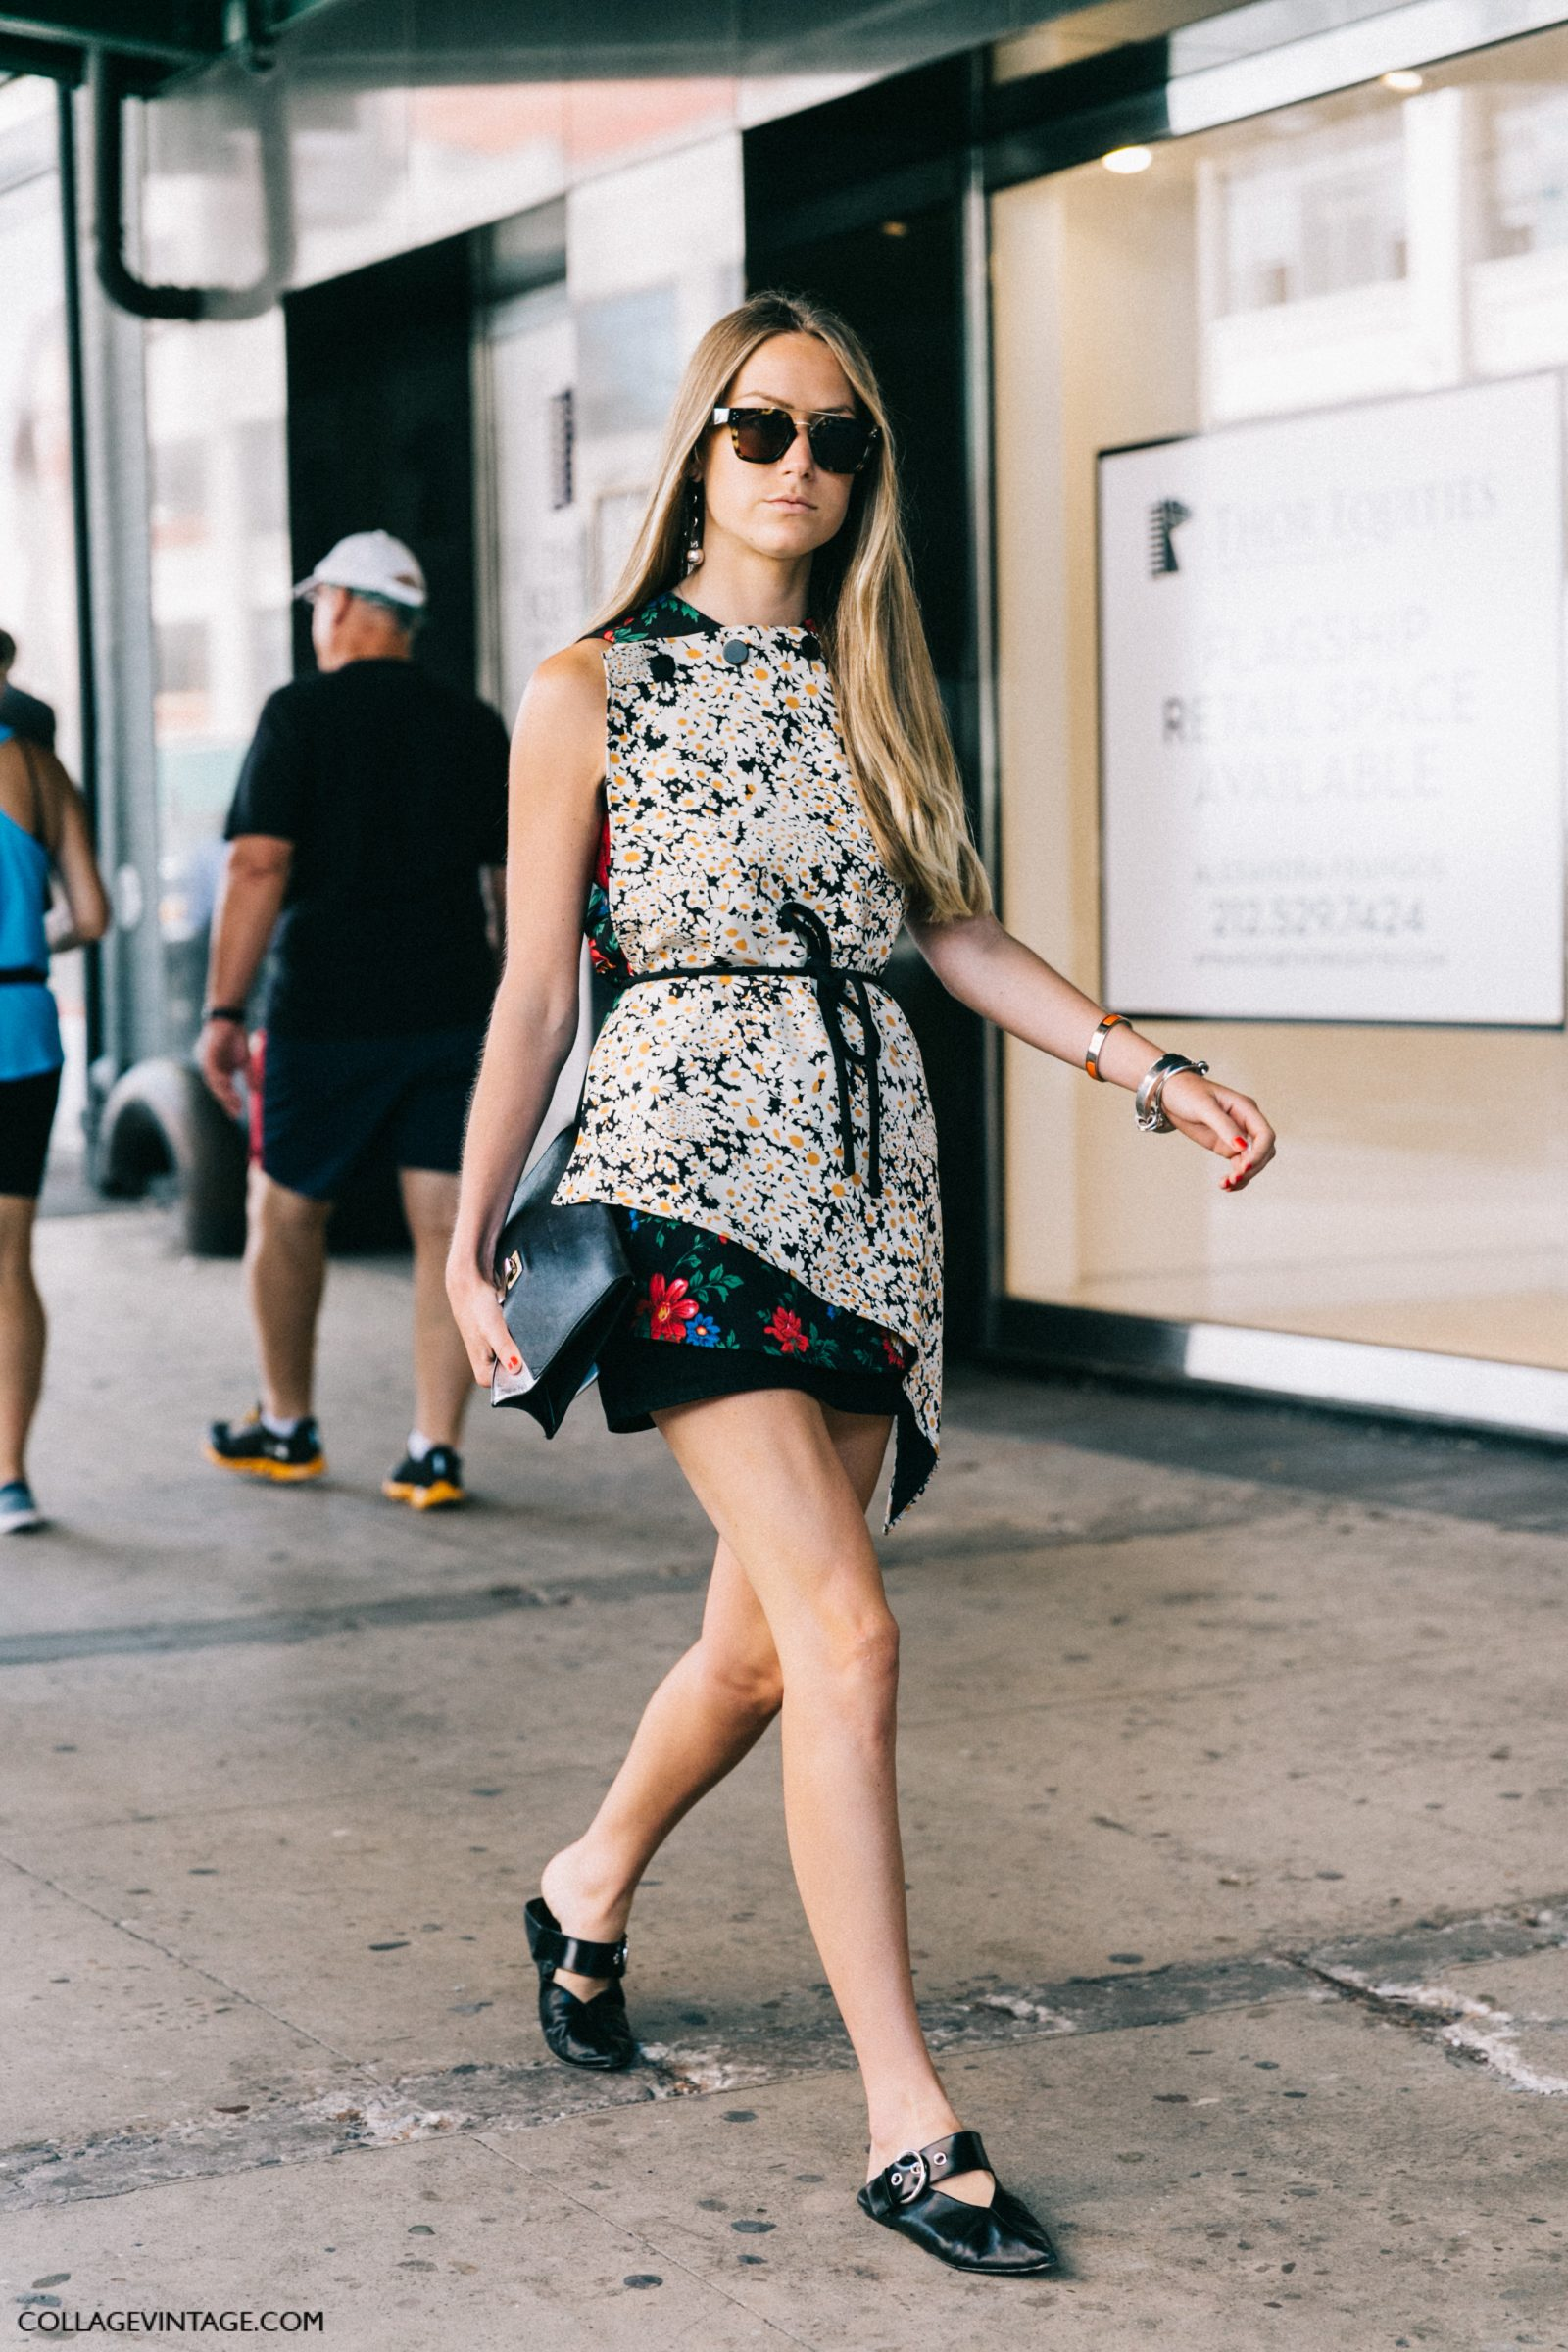 nyfw-new_york_fashion_week_ss17-street_style-outfits-collage_vintage-vintage-phillip_lim-the-row-proenza_schouler-rossie_aussolin-156